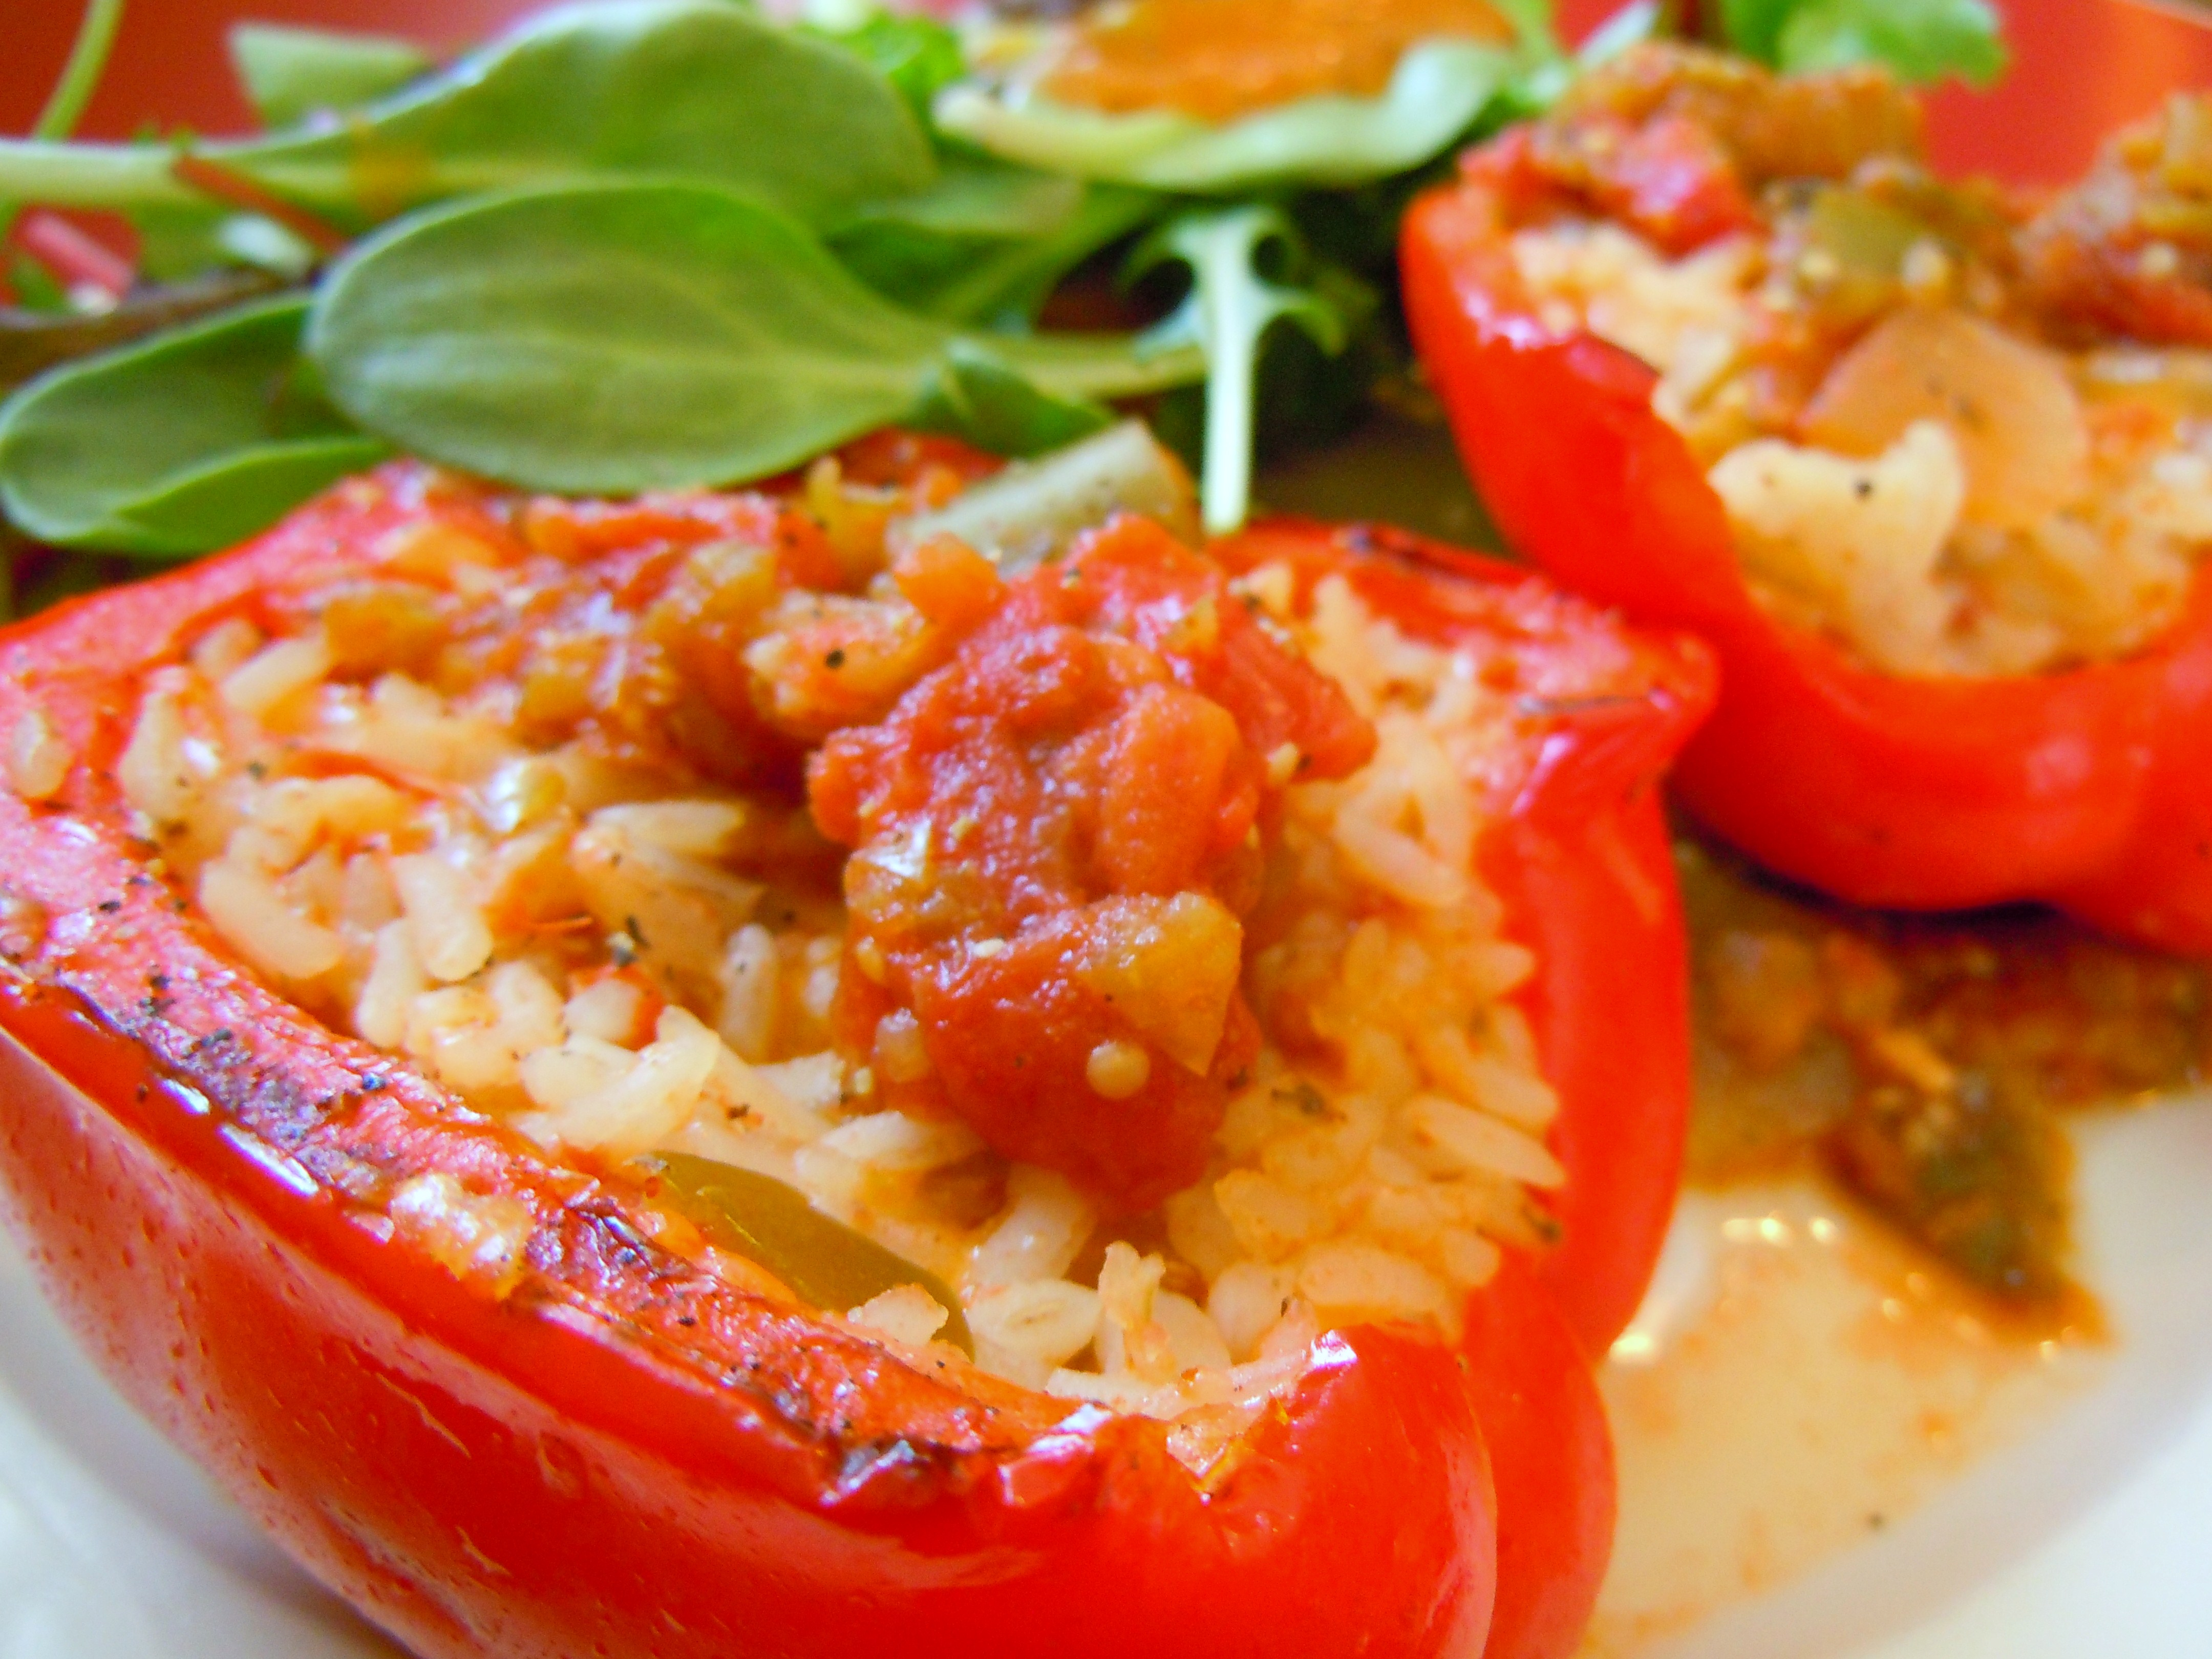 bell peppers chili stuffed bell peppers stuffed sweet bell peppers ...